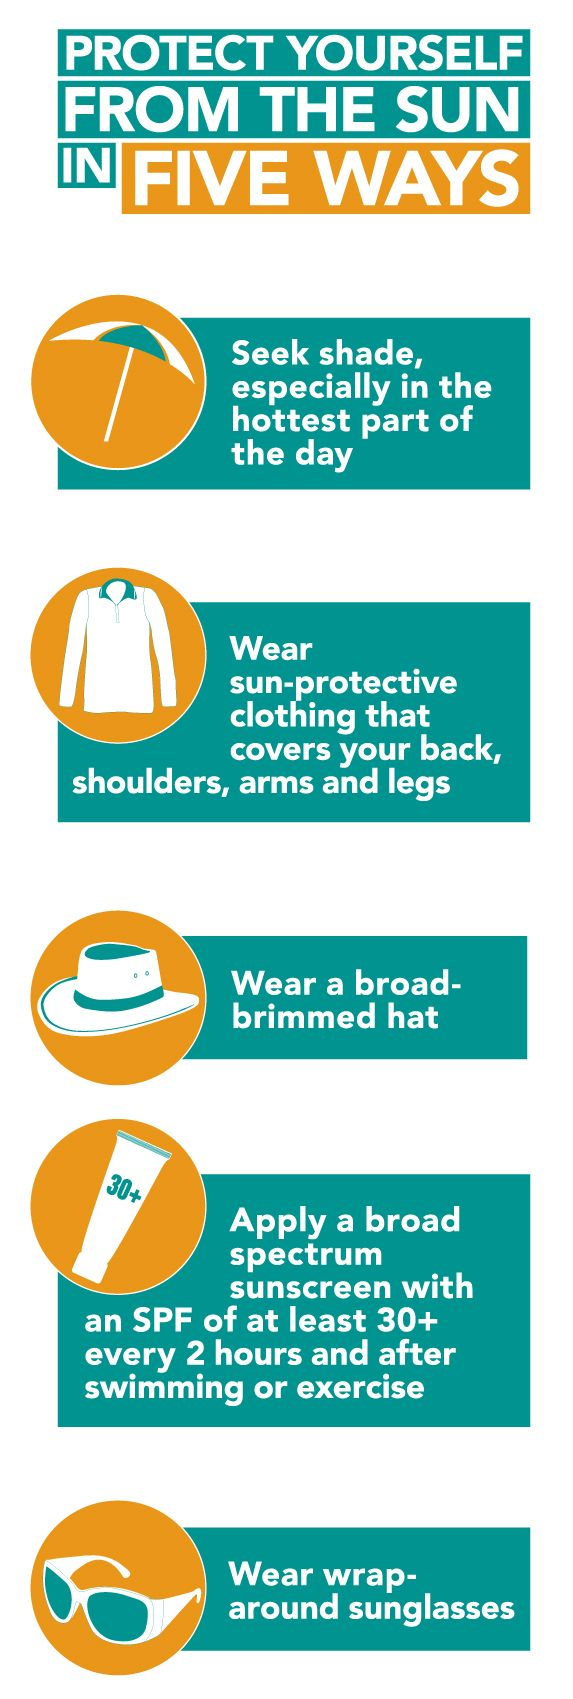 Protect yourself from the sun in Five Ways!